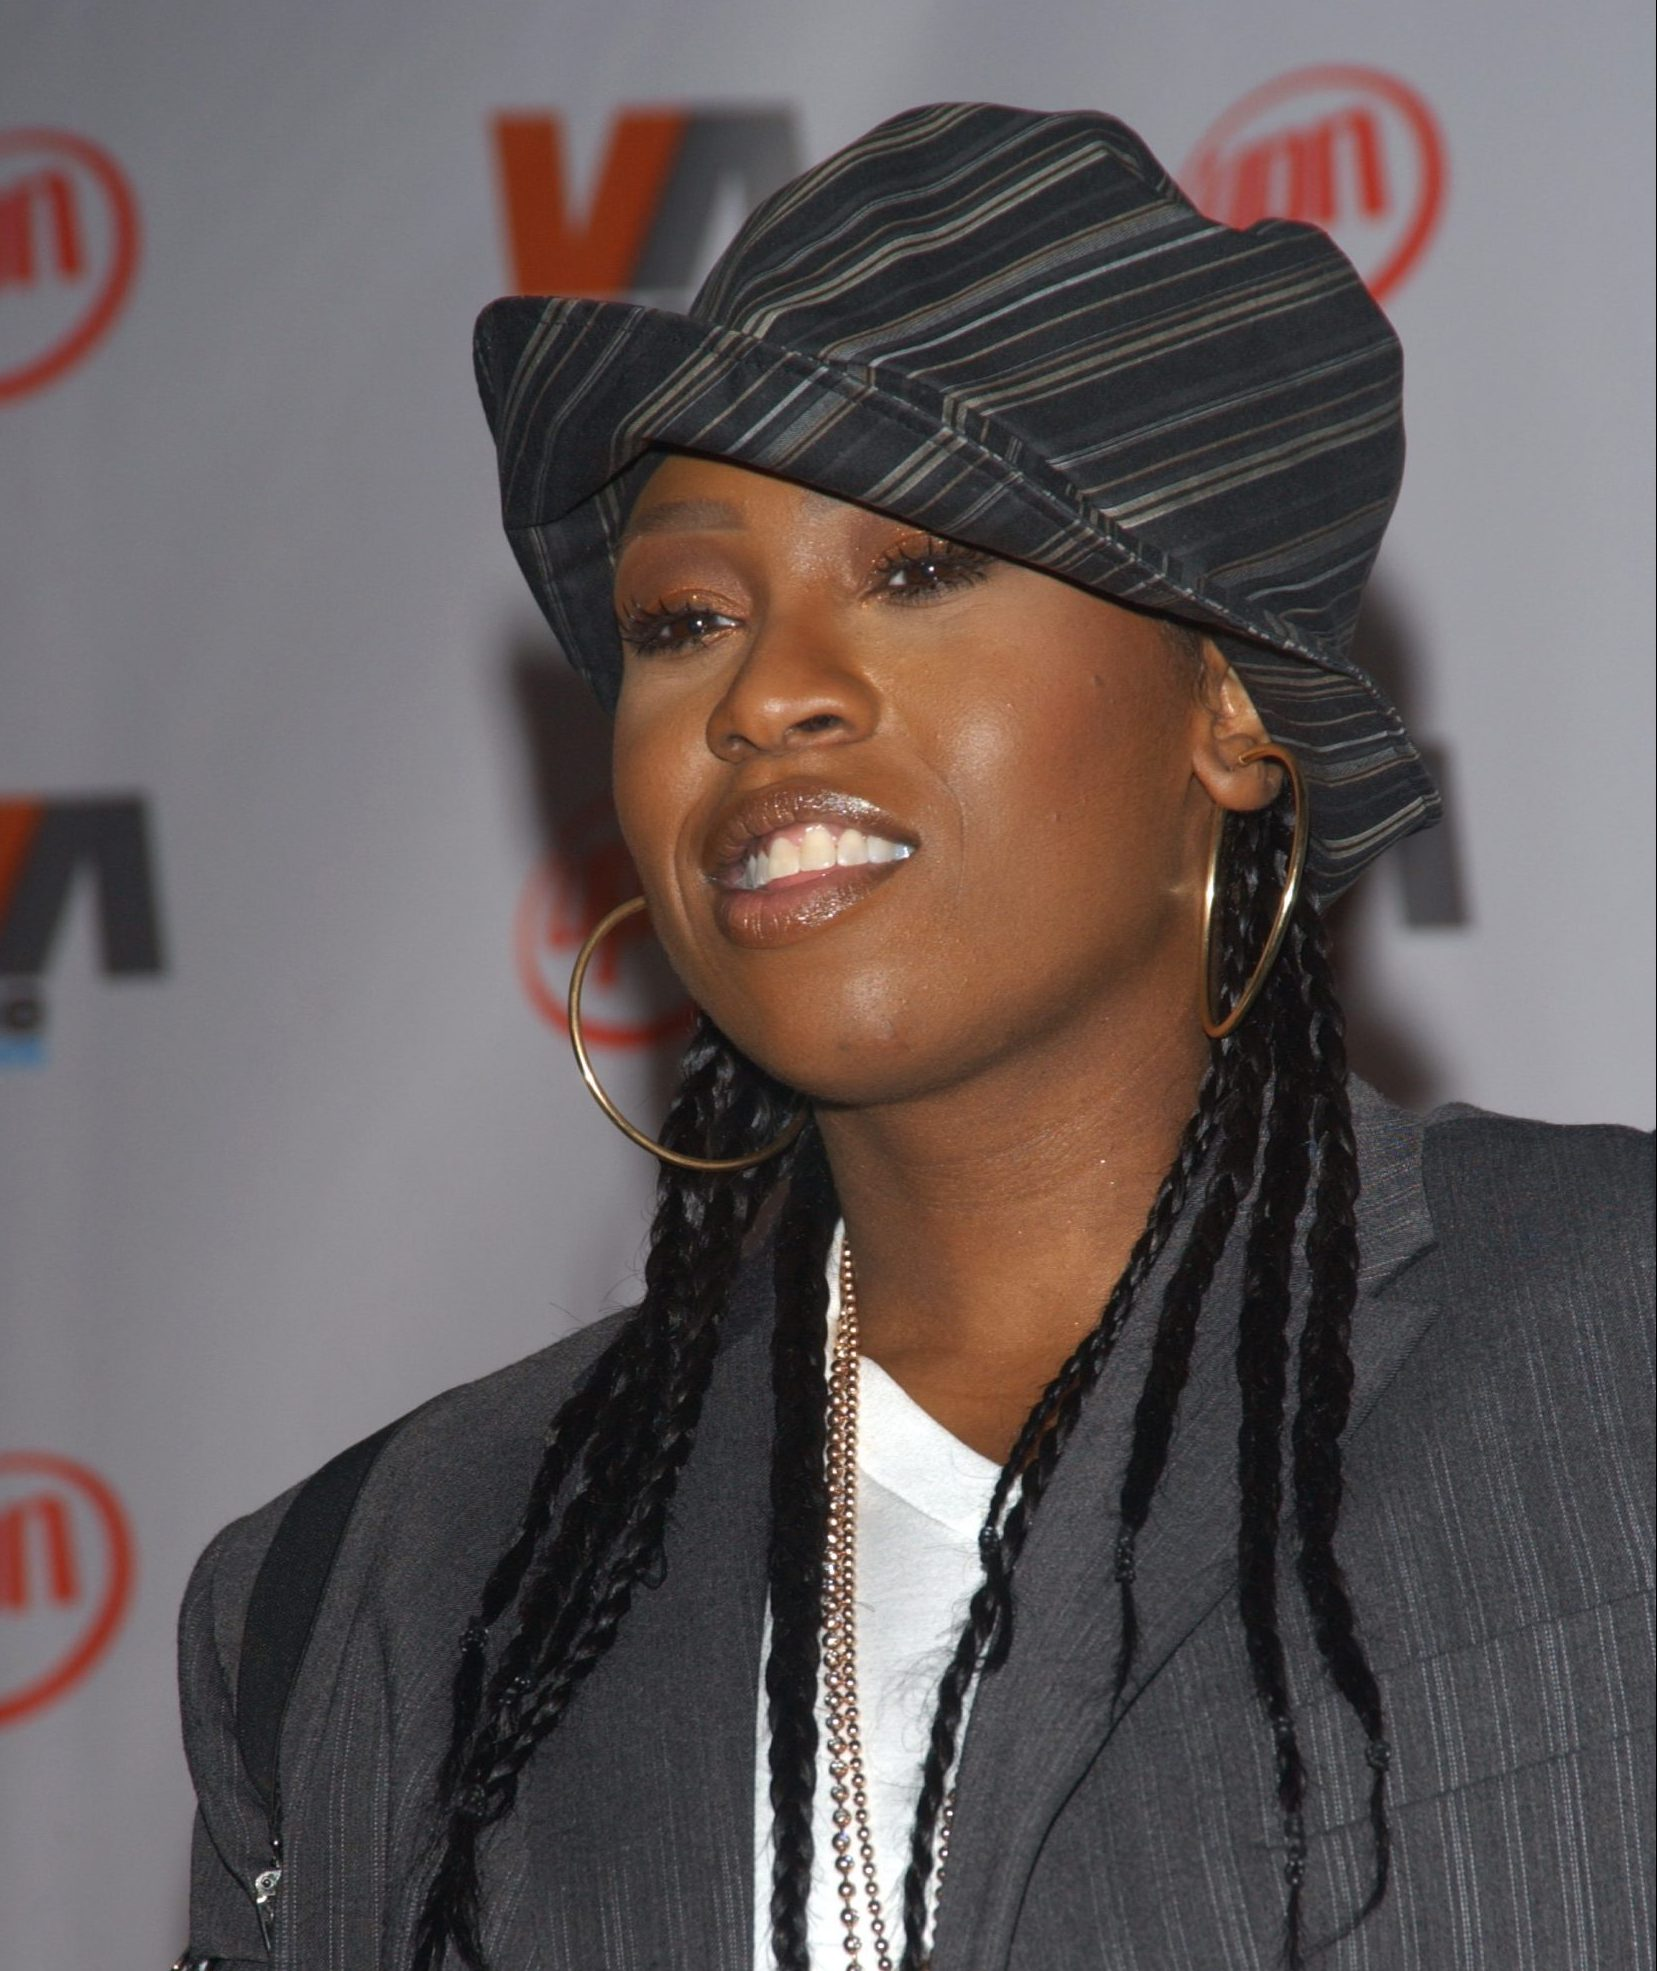 Missy Elliot wearing a striped black and grey hat, hoop earrings and her hair in braids.